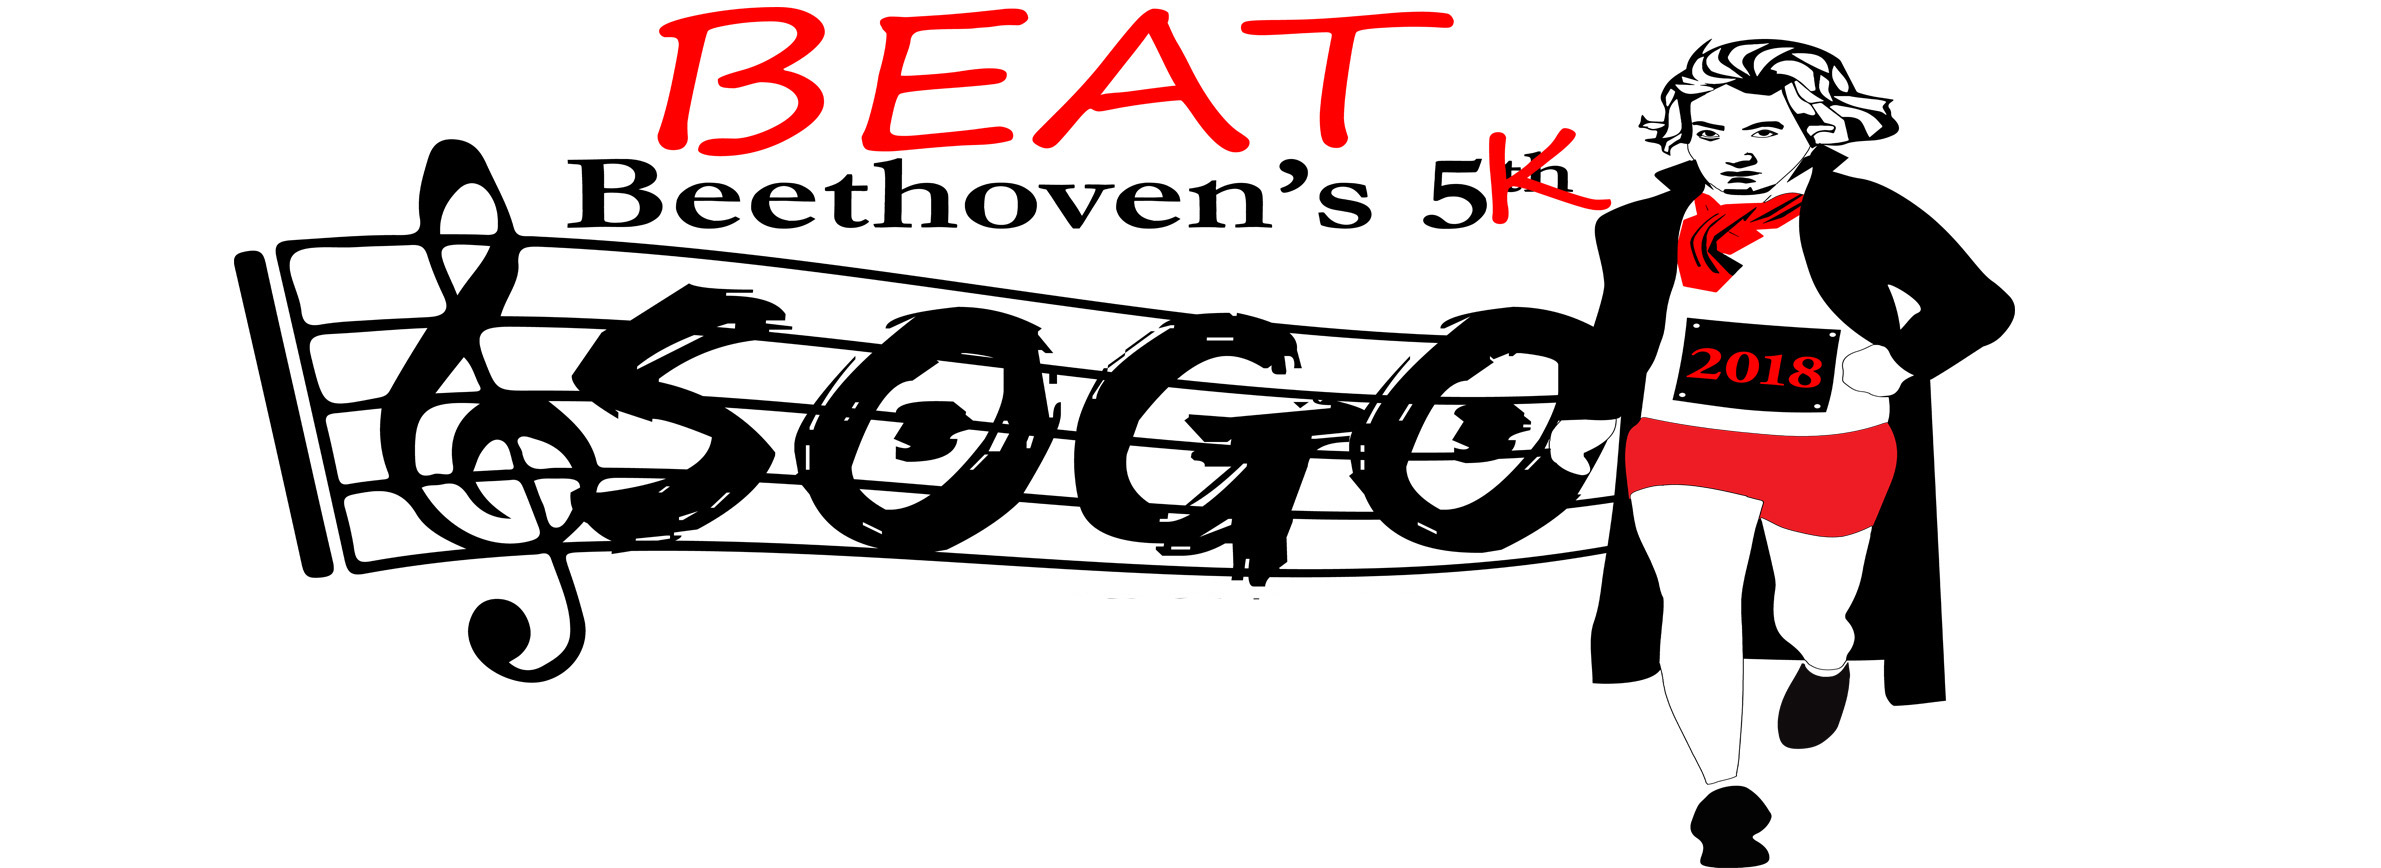 Beetoven 5K Run October 6, 2018